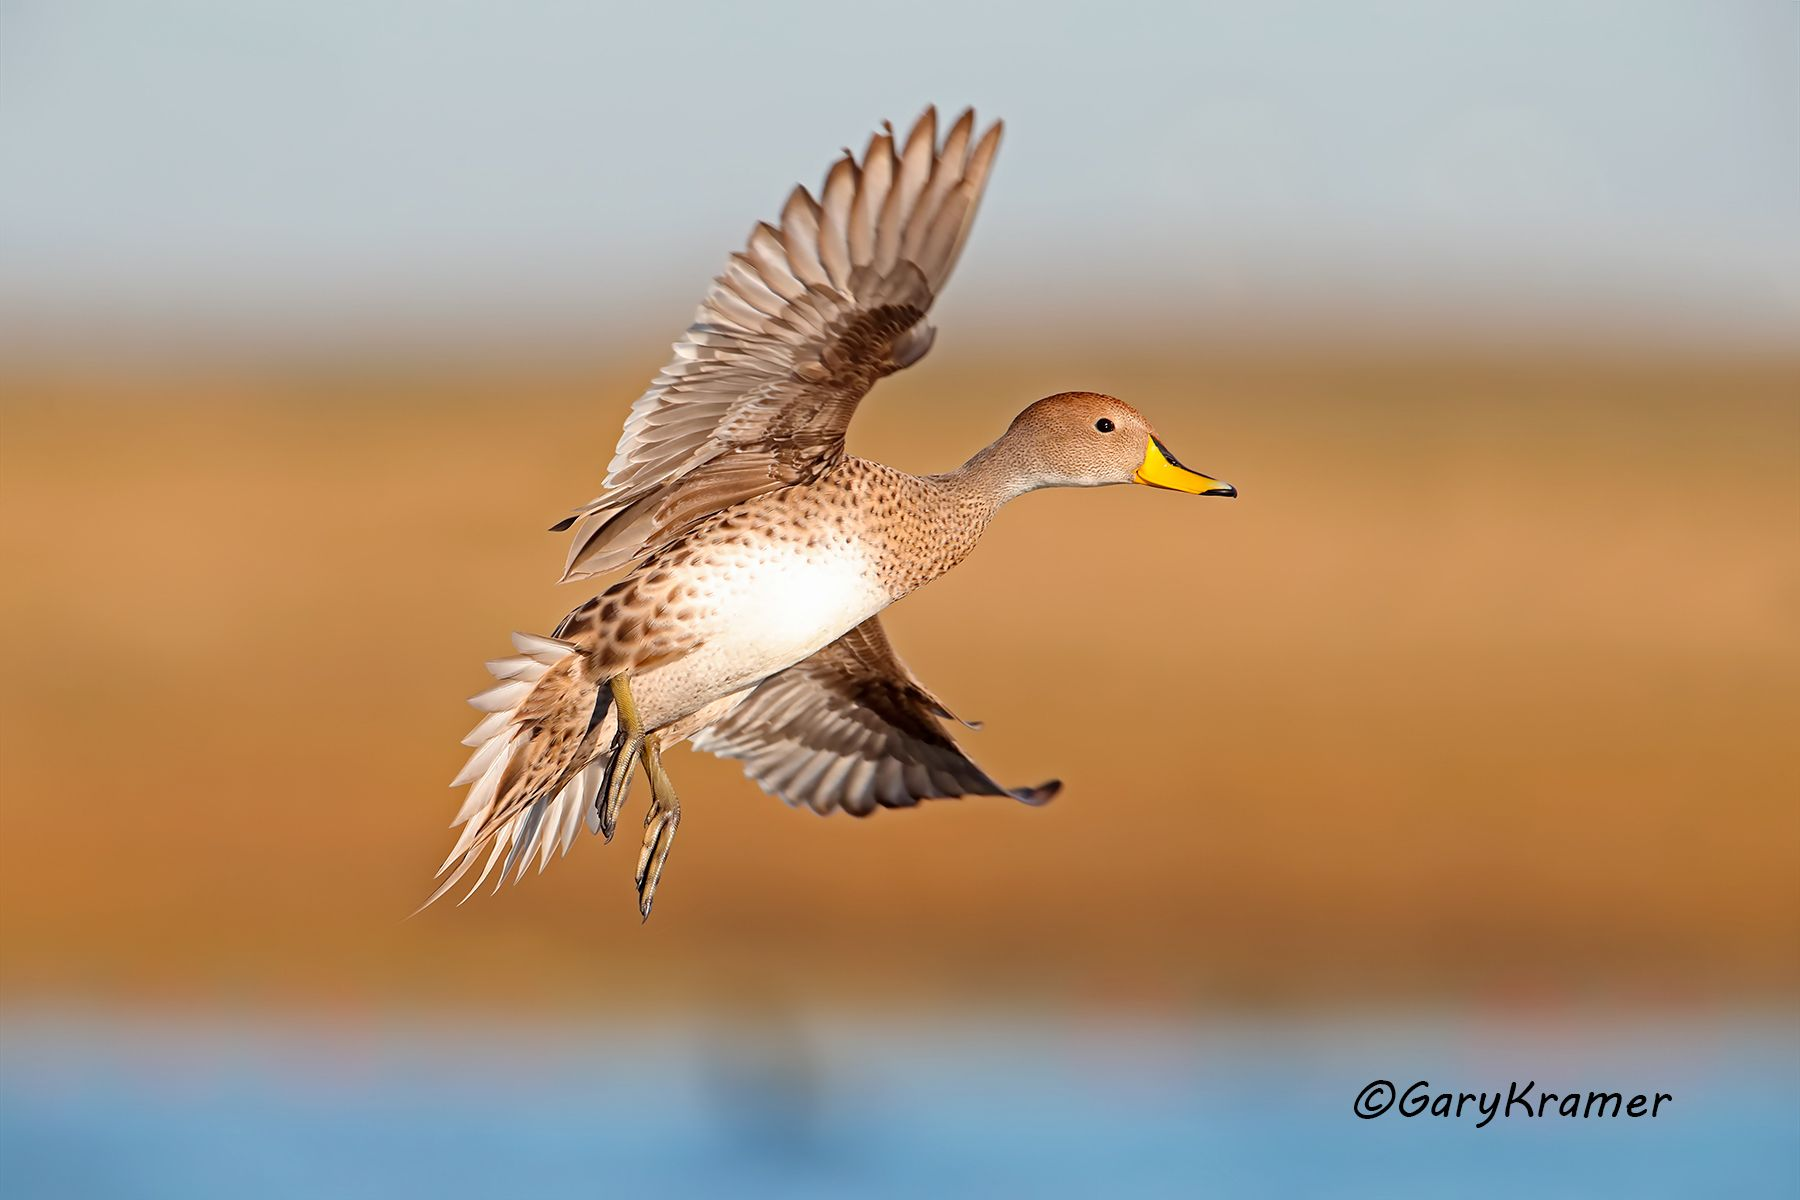 Yellow-billed Pintail (Anas georgica) Argentiana - SBWPi#229d